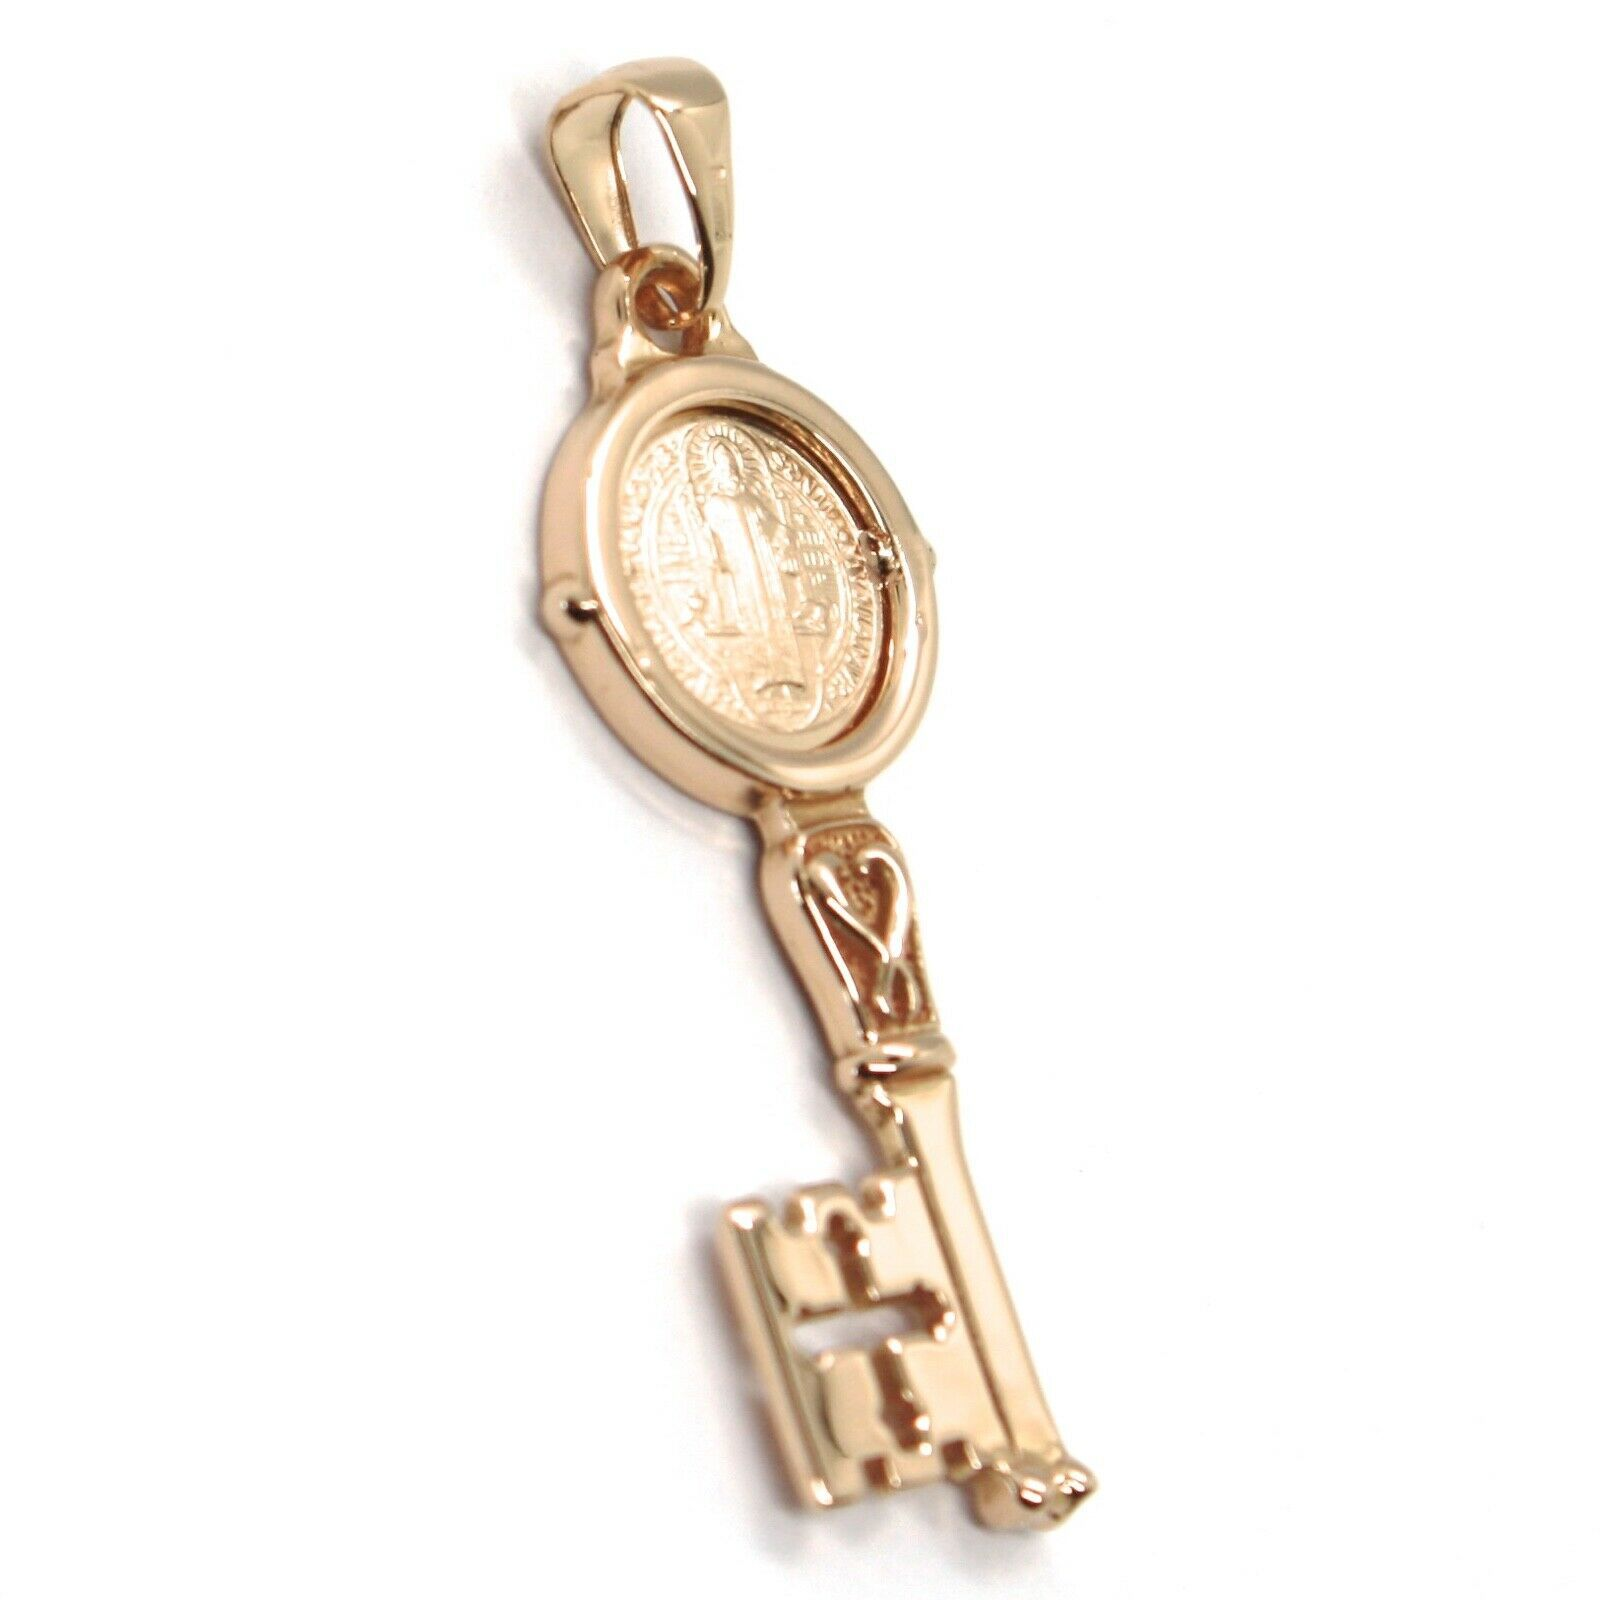 SOLID 18K ROSE GOLD KEY PENDANT, SAINT BENEDICT MEDAL, CROSS, 1.2 INCHES image 2